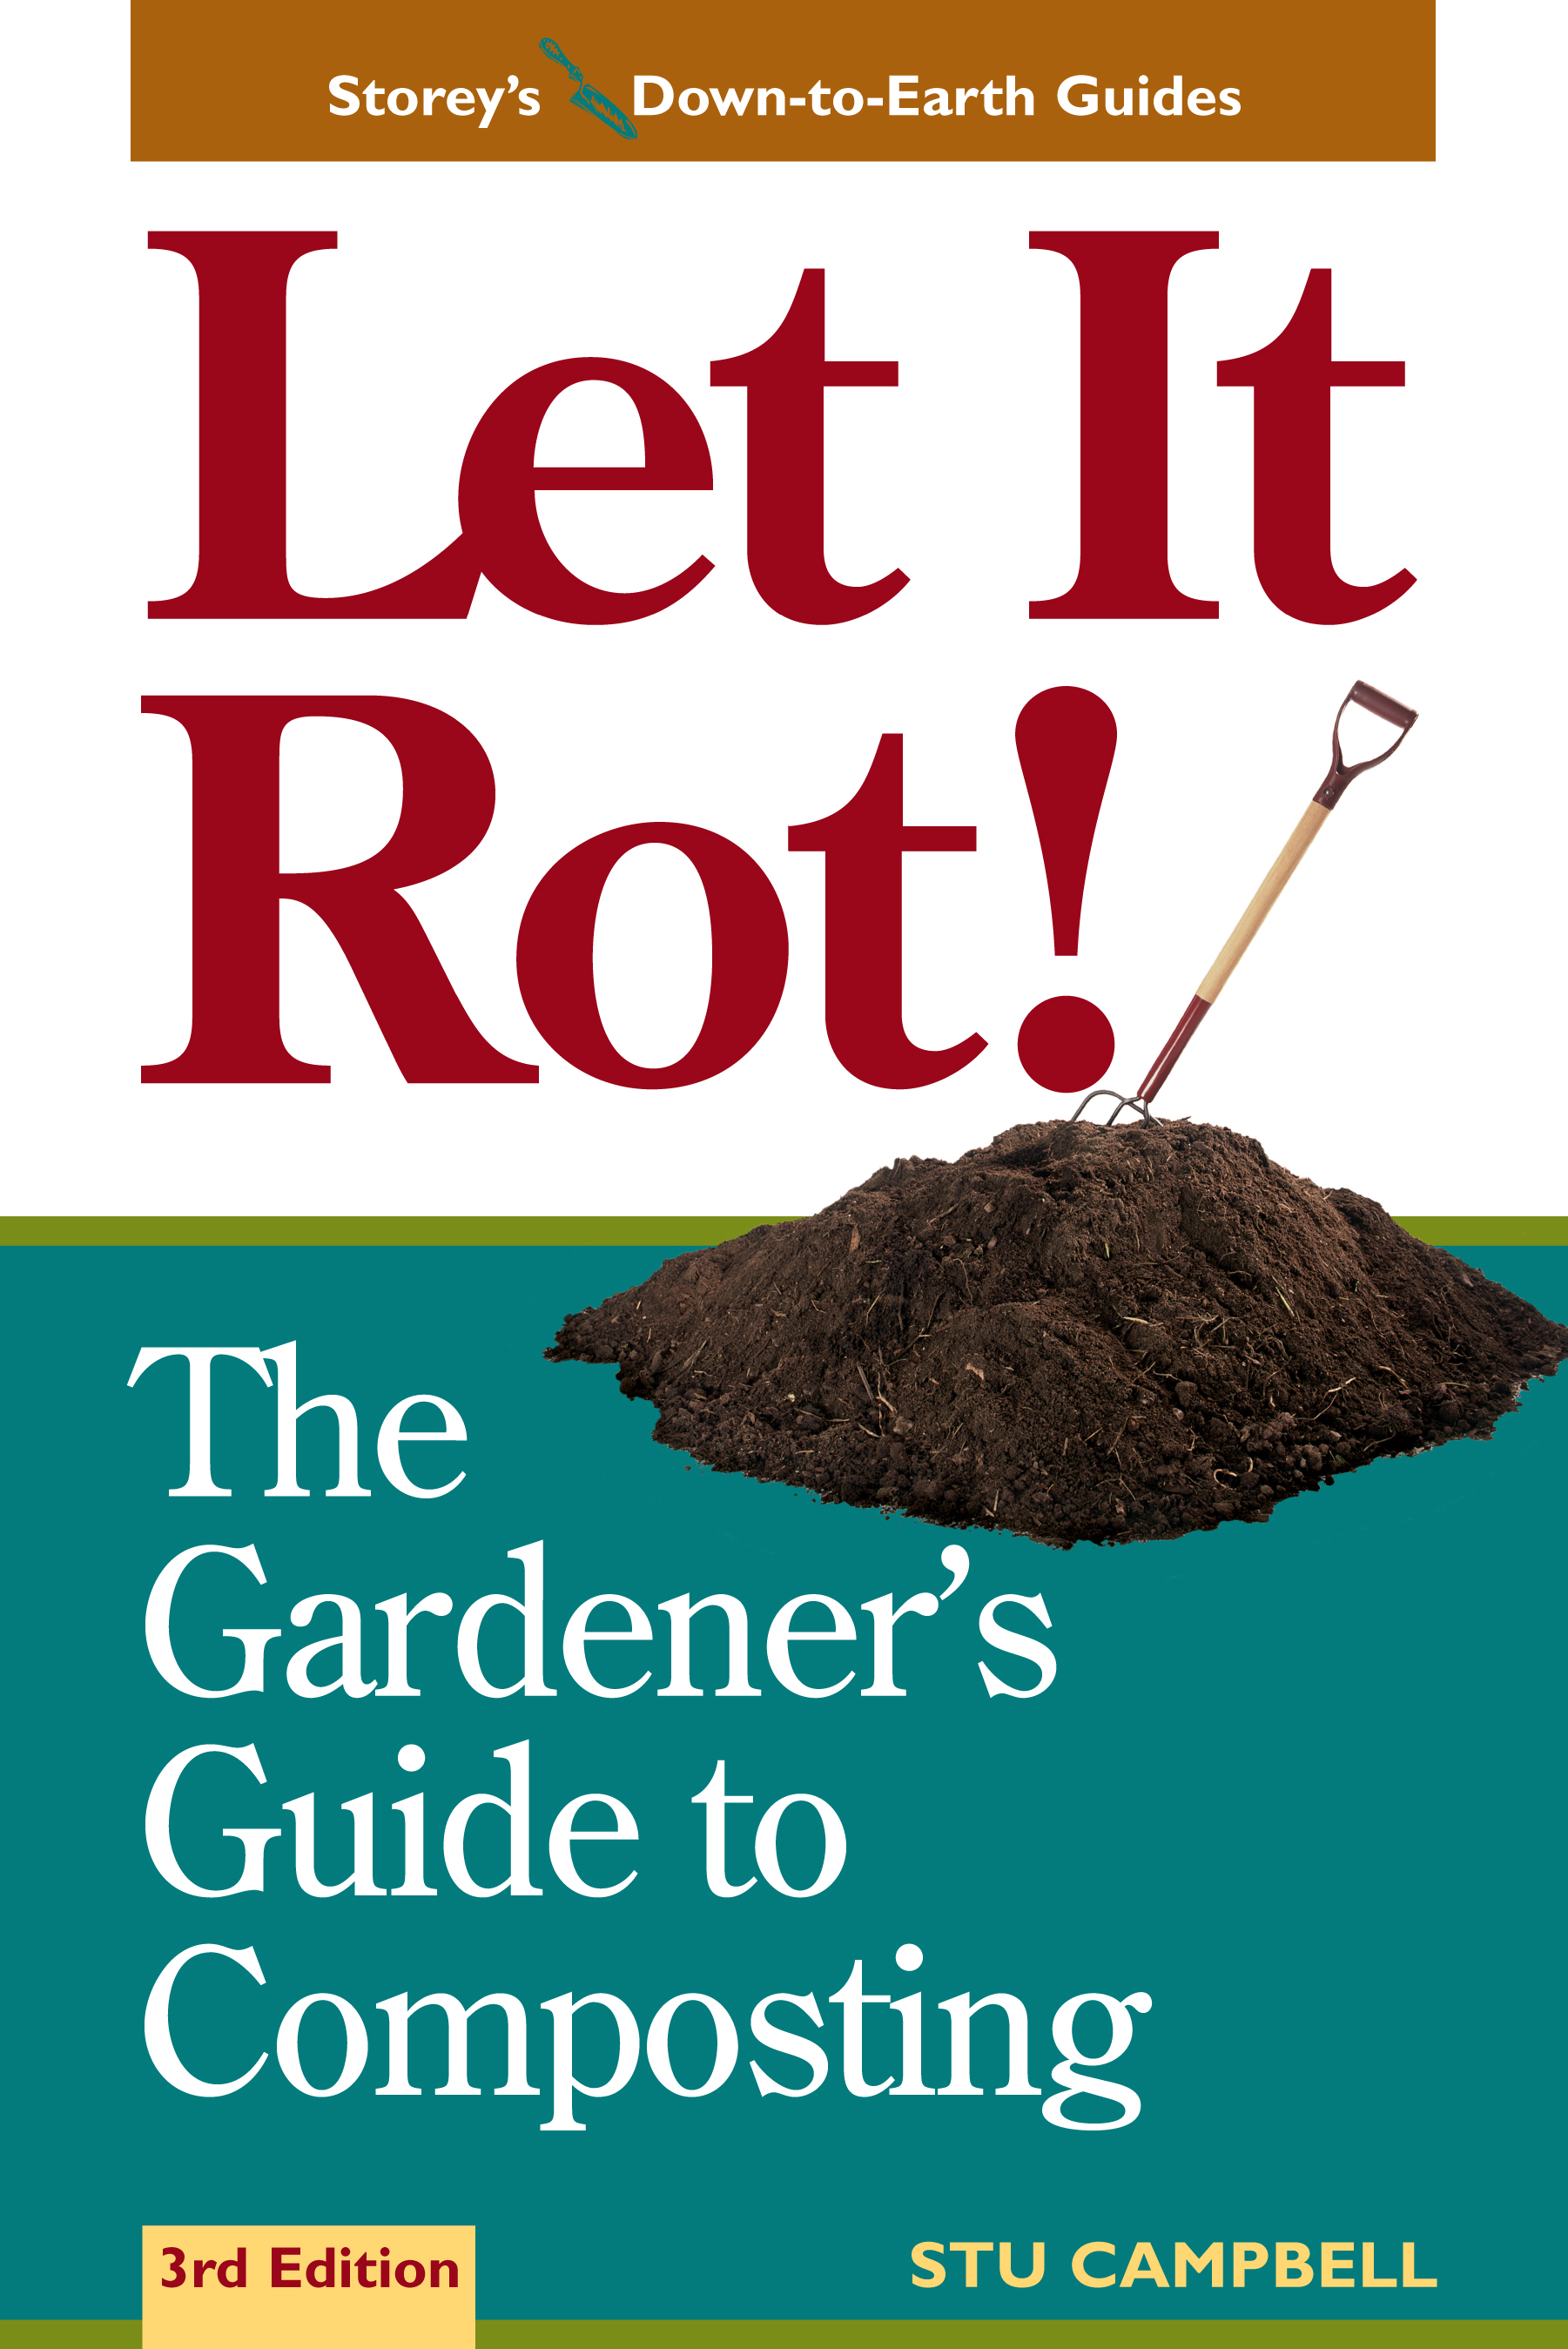 Let It Rot! The Gardener's Guide to Composting (Third Edition) - Stu Campbell